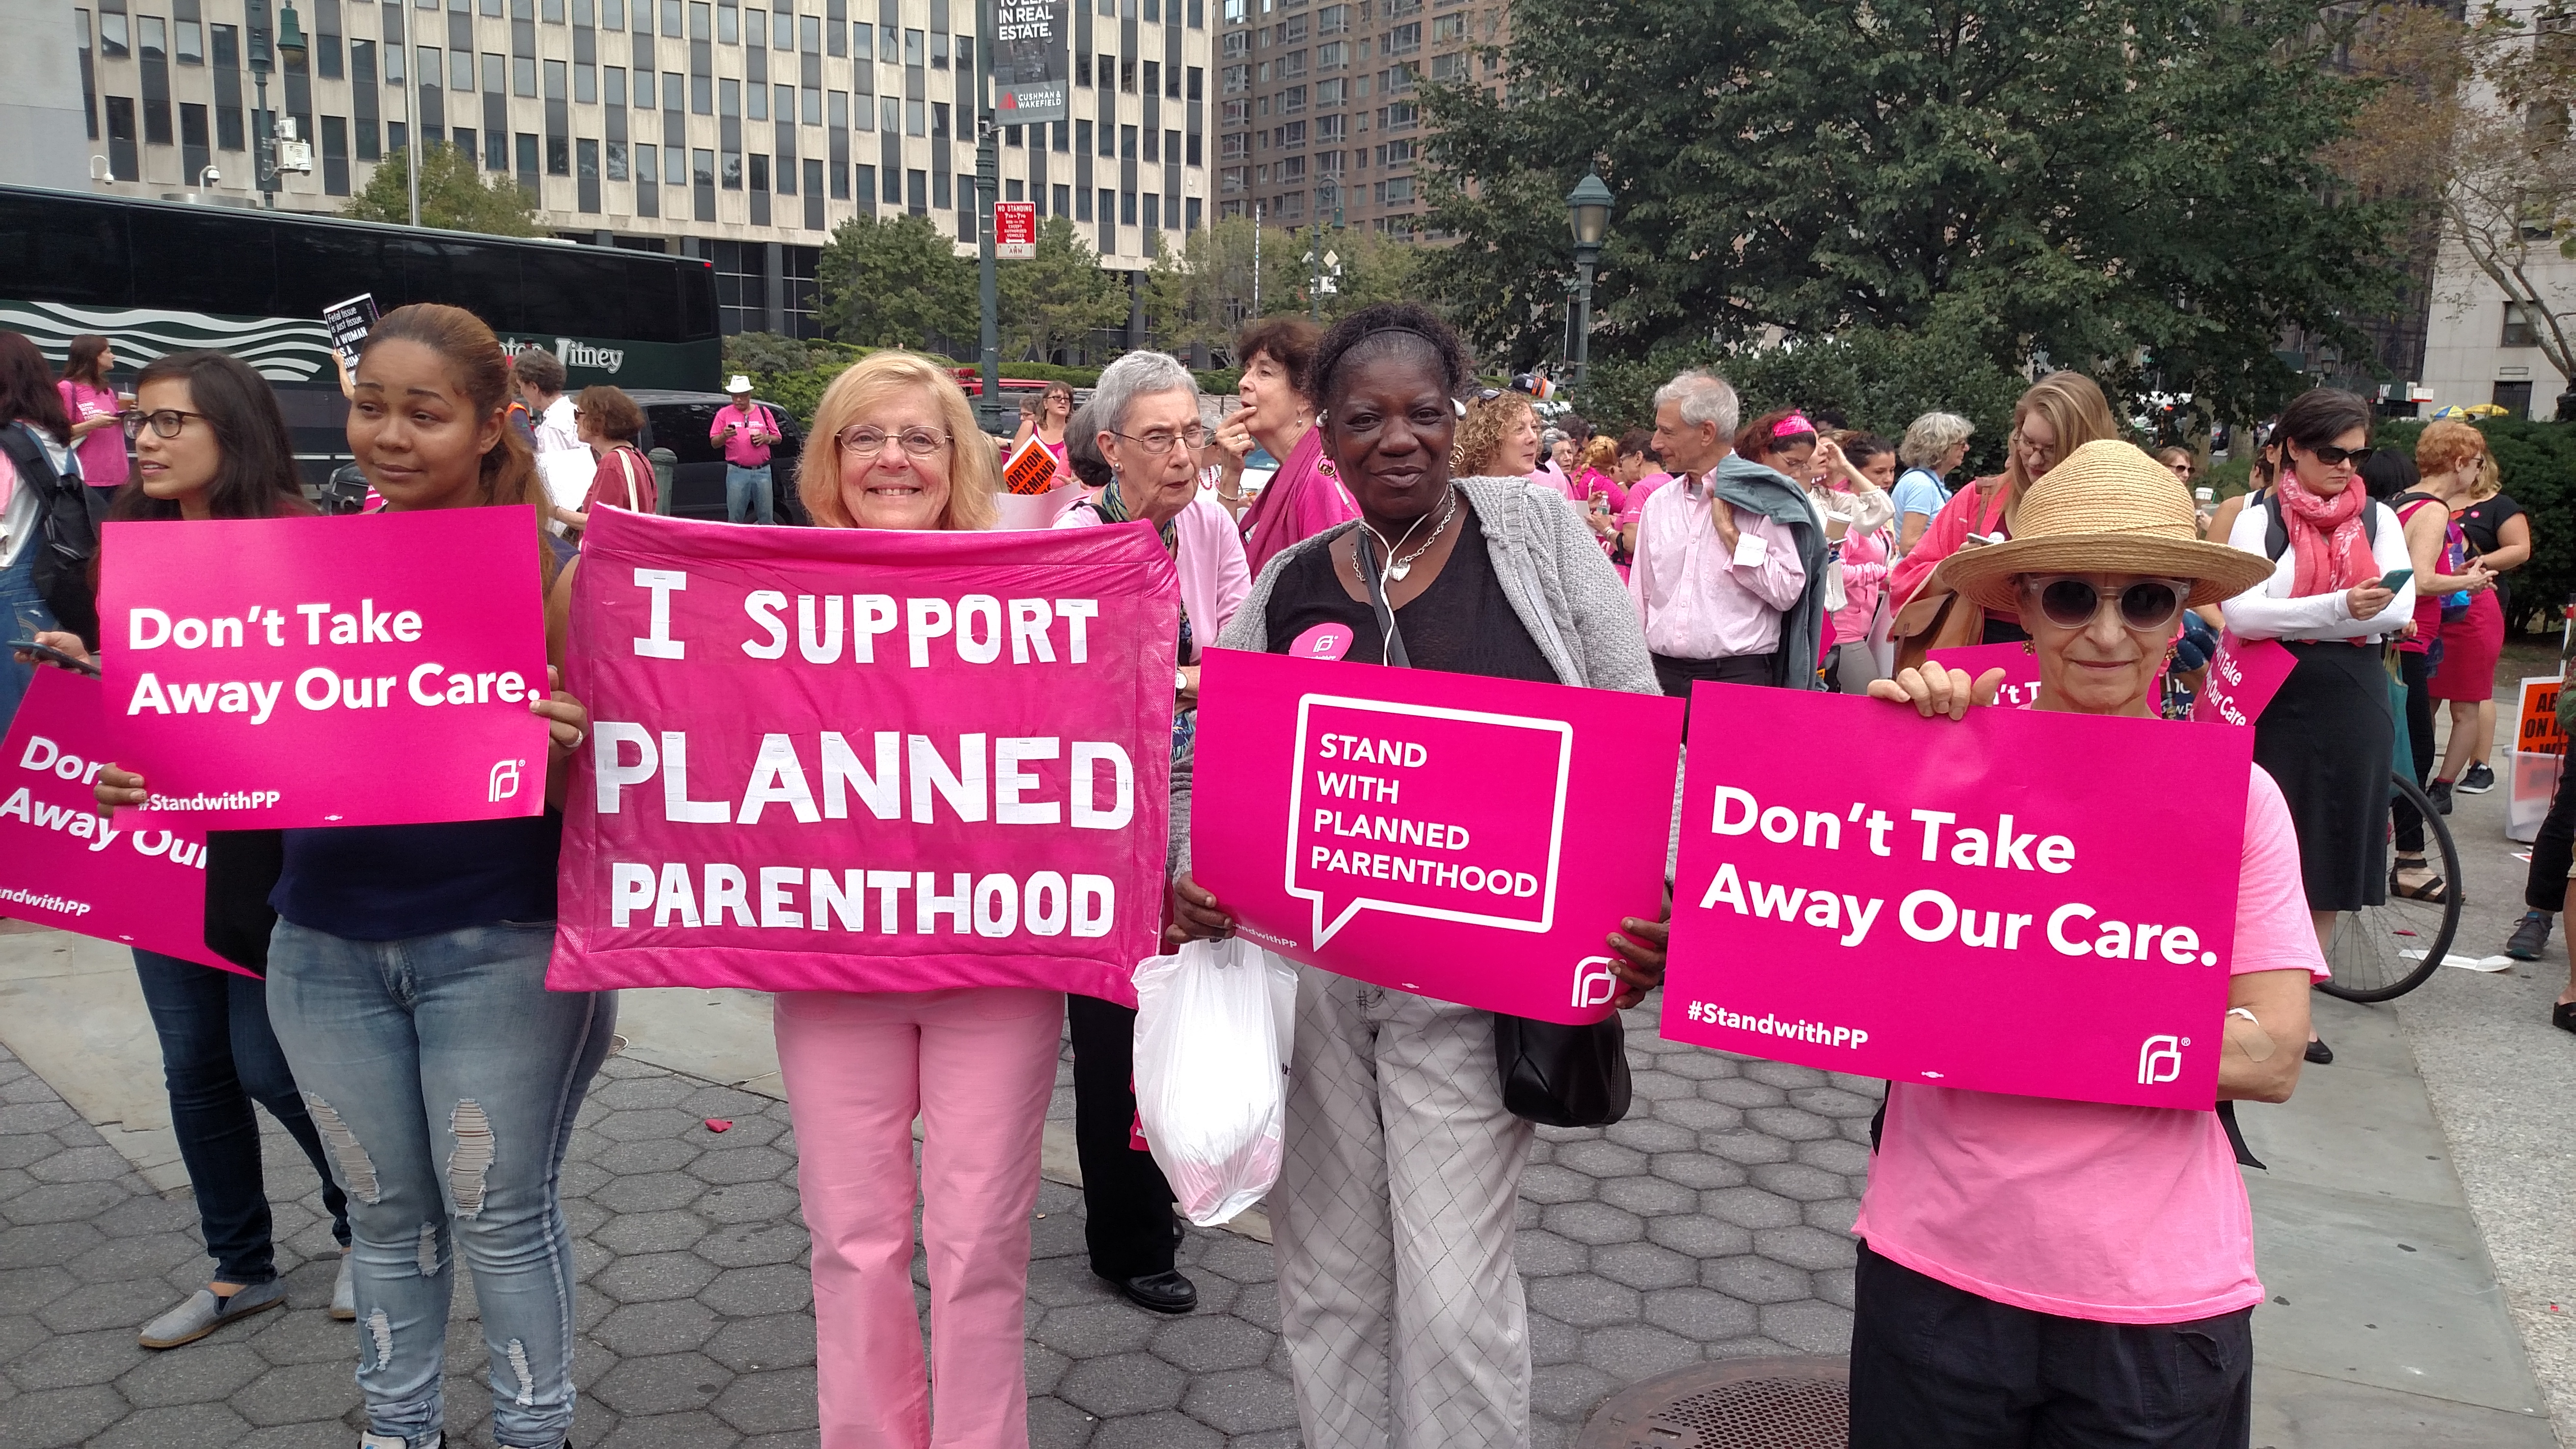 Iowa Planned Parenthood Loses Taxpayer Funding, Closes